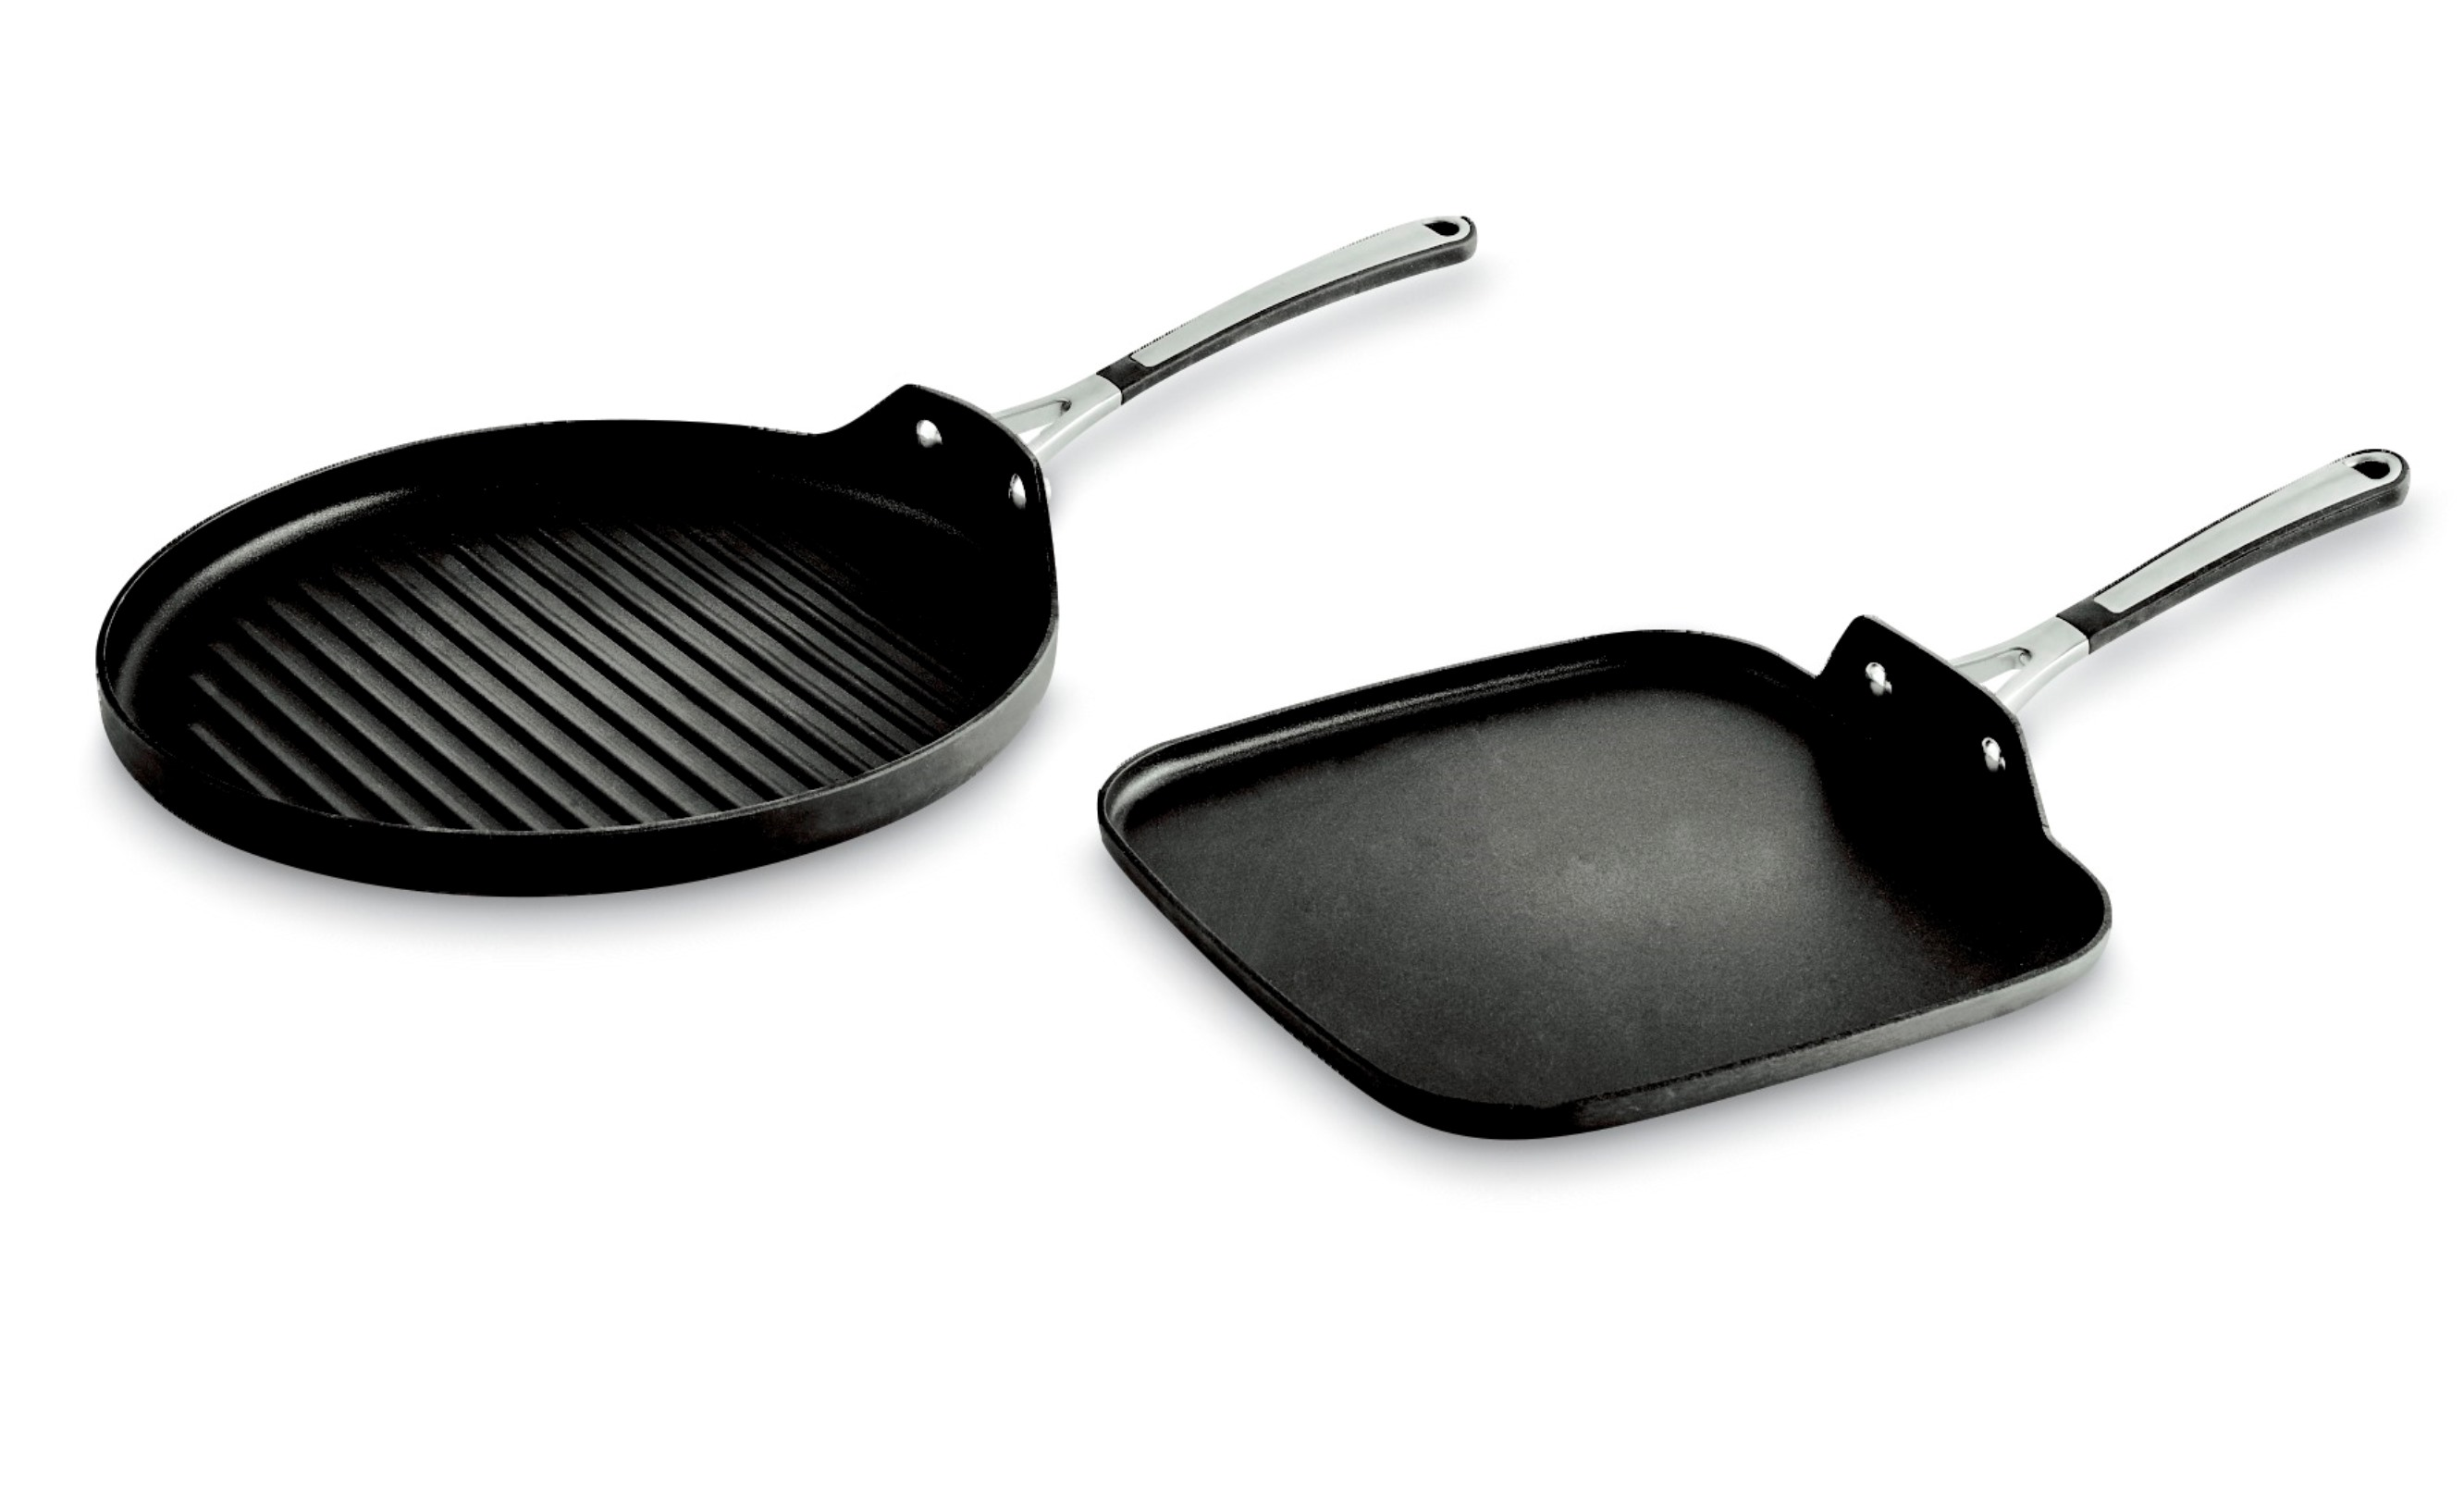 calphalon kitchen outlet base units for sale 13 quot round grill and 11 square griddle value pack